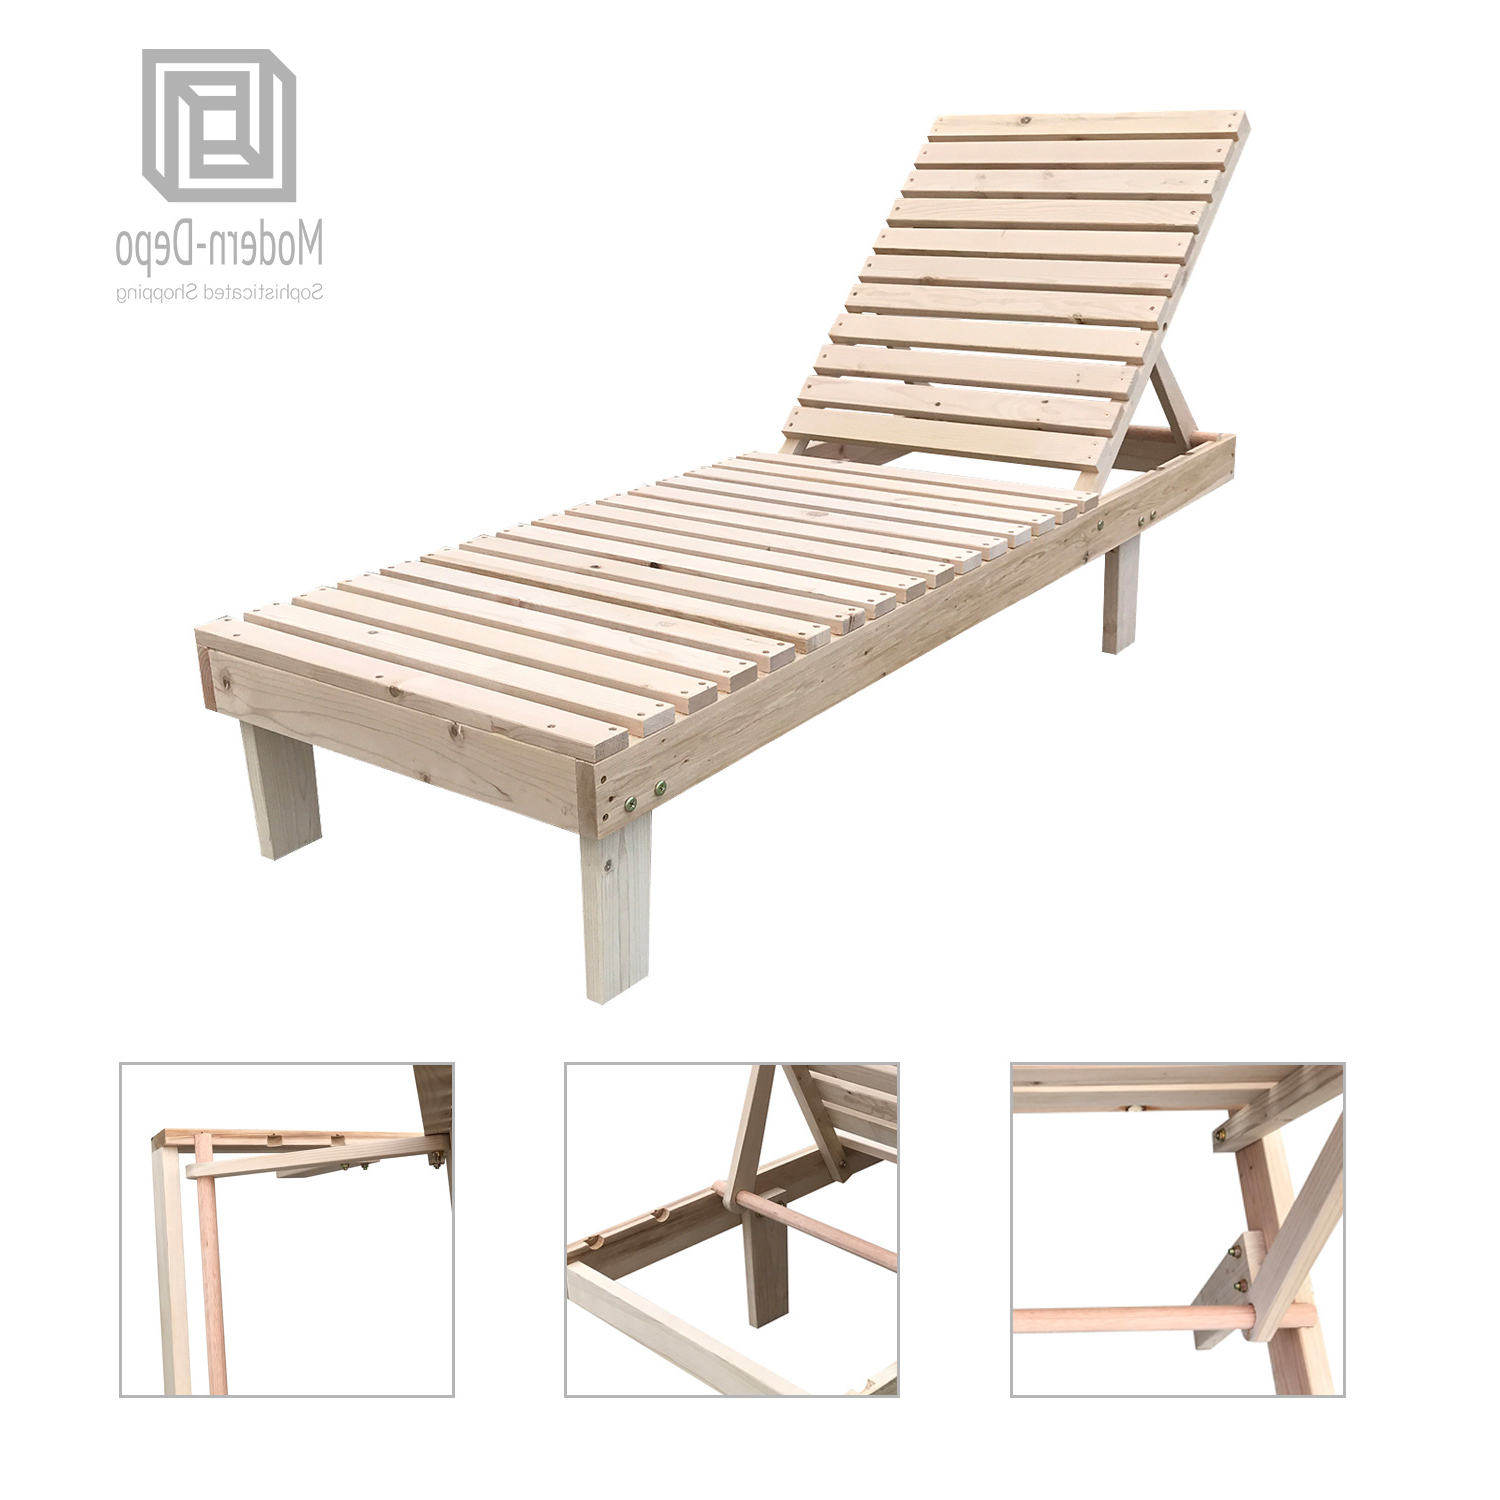 Latest Outdoor Adjustable Wood Chaise Lounges In Details About Patio Spa Pool Wooden Chaise Lounge Adjustable Chair Outdoor Garden Furniture (View 20 of 25)